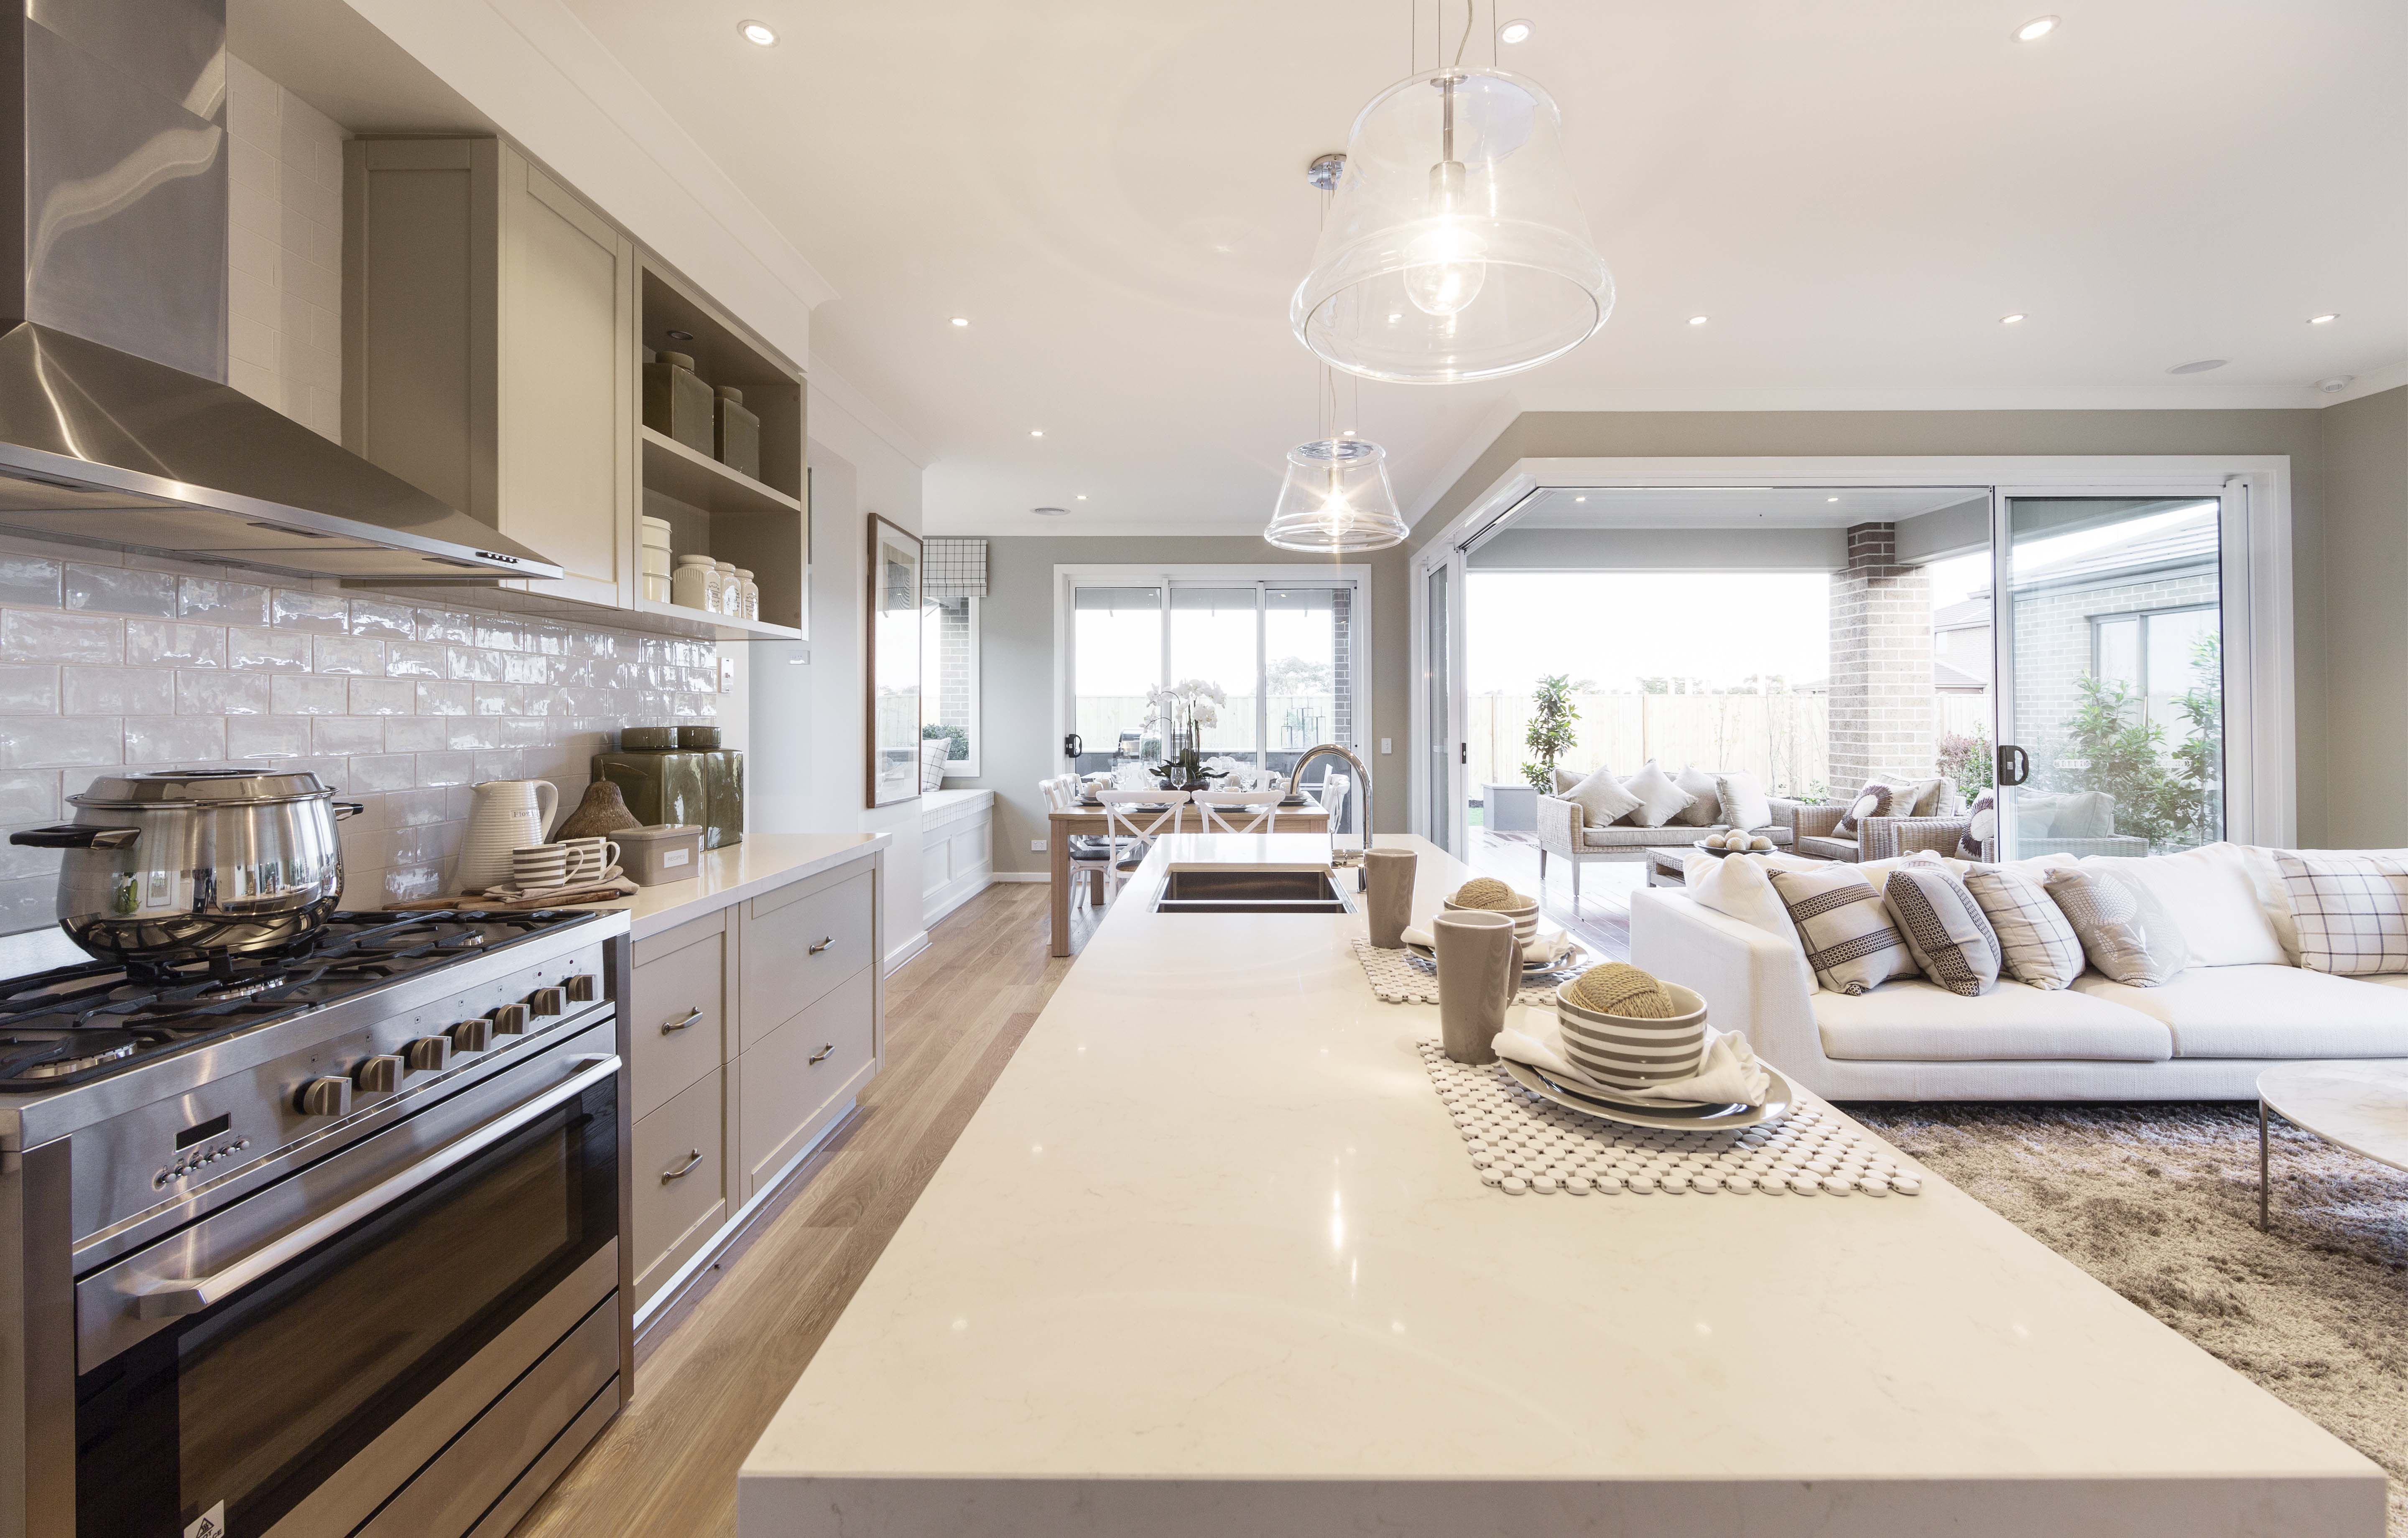 Avalon   Simonds Homes #interiordesign #kitchen